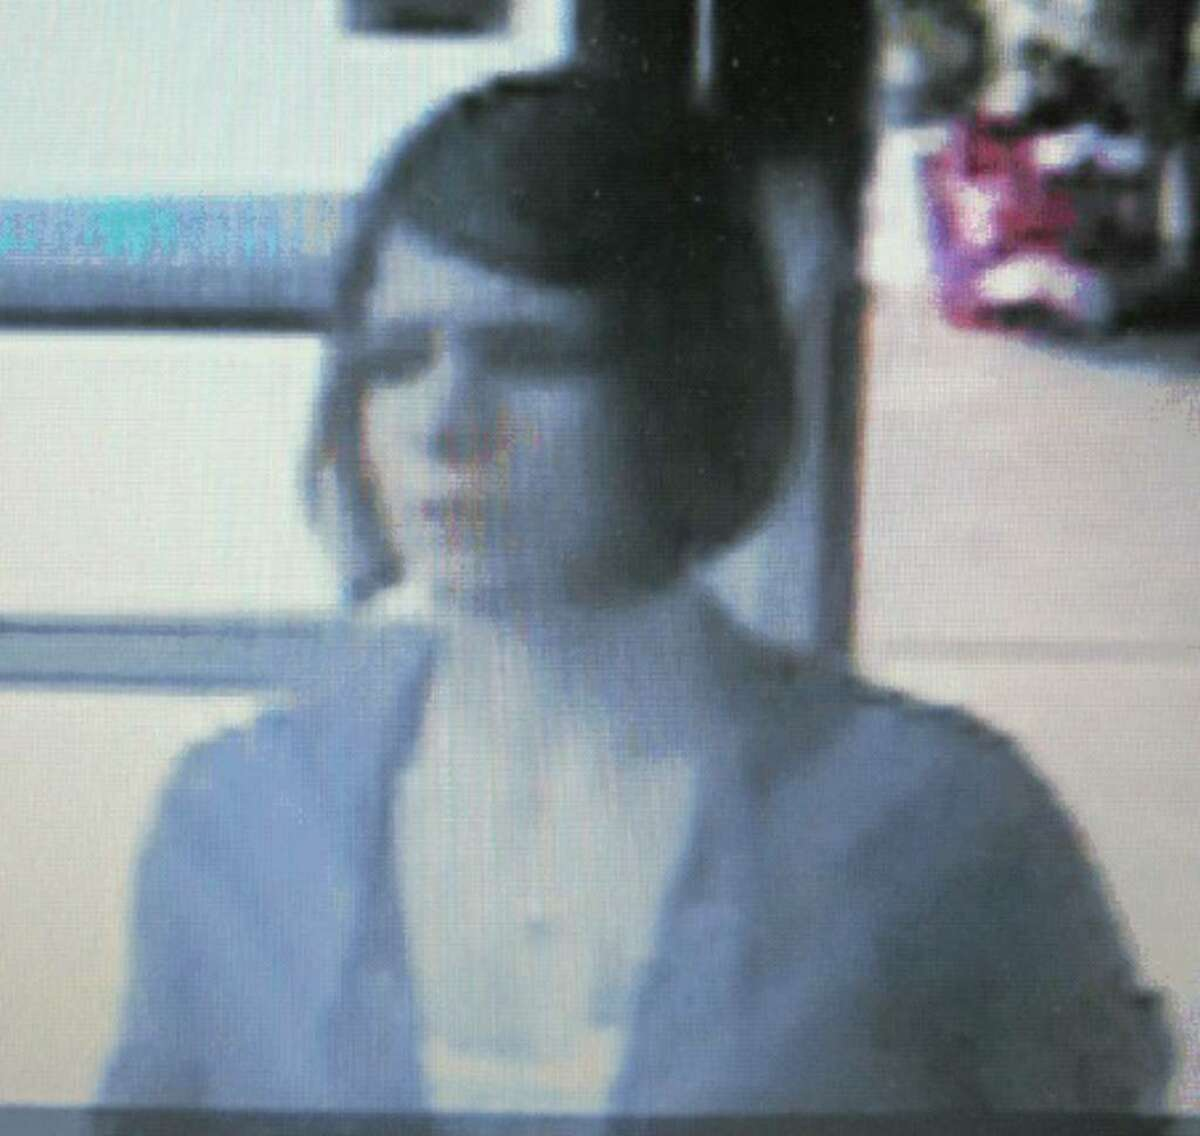 Bethlehem police seek a suspect in passing of counterfeit $100 bills (Photo provided)